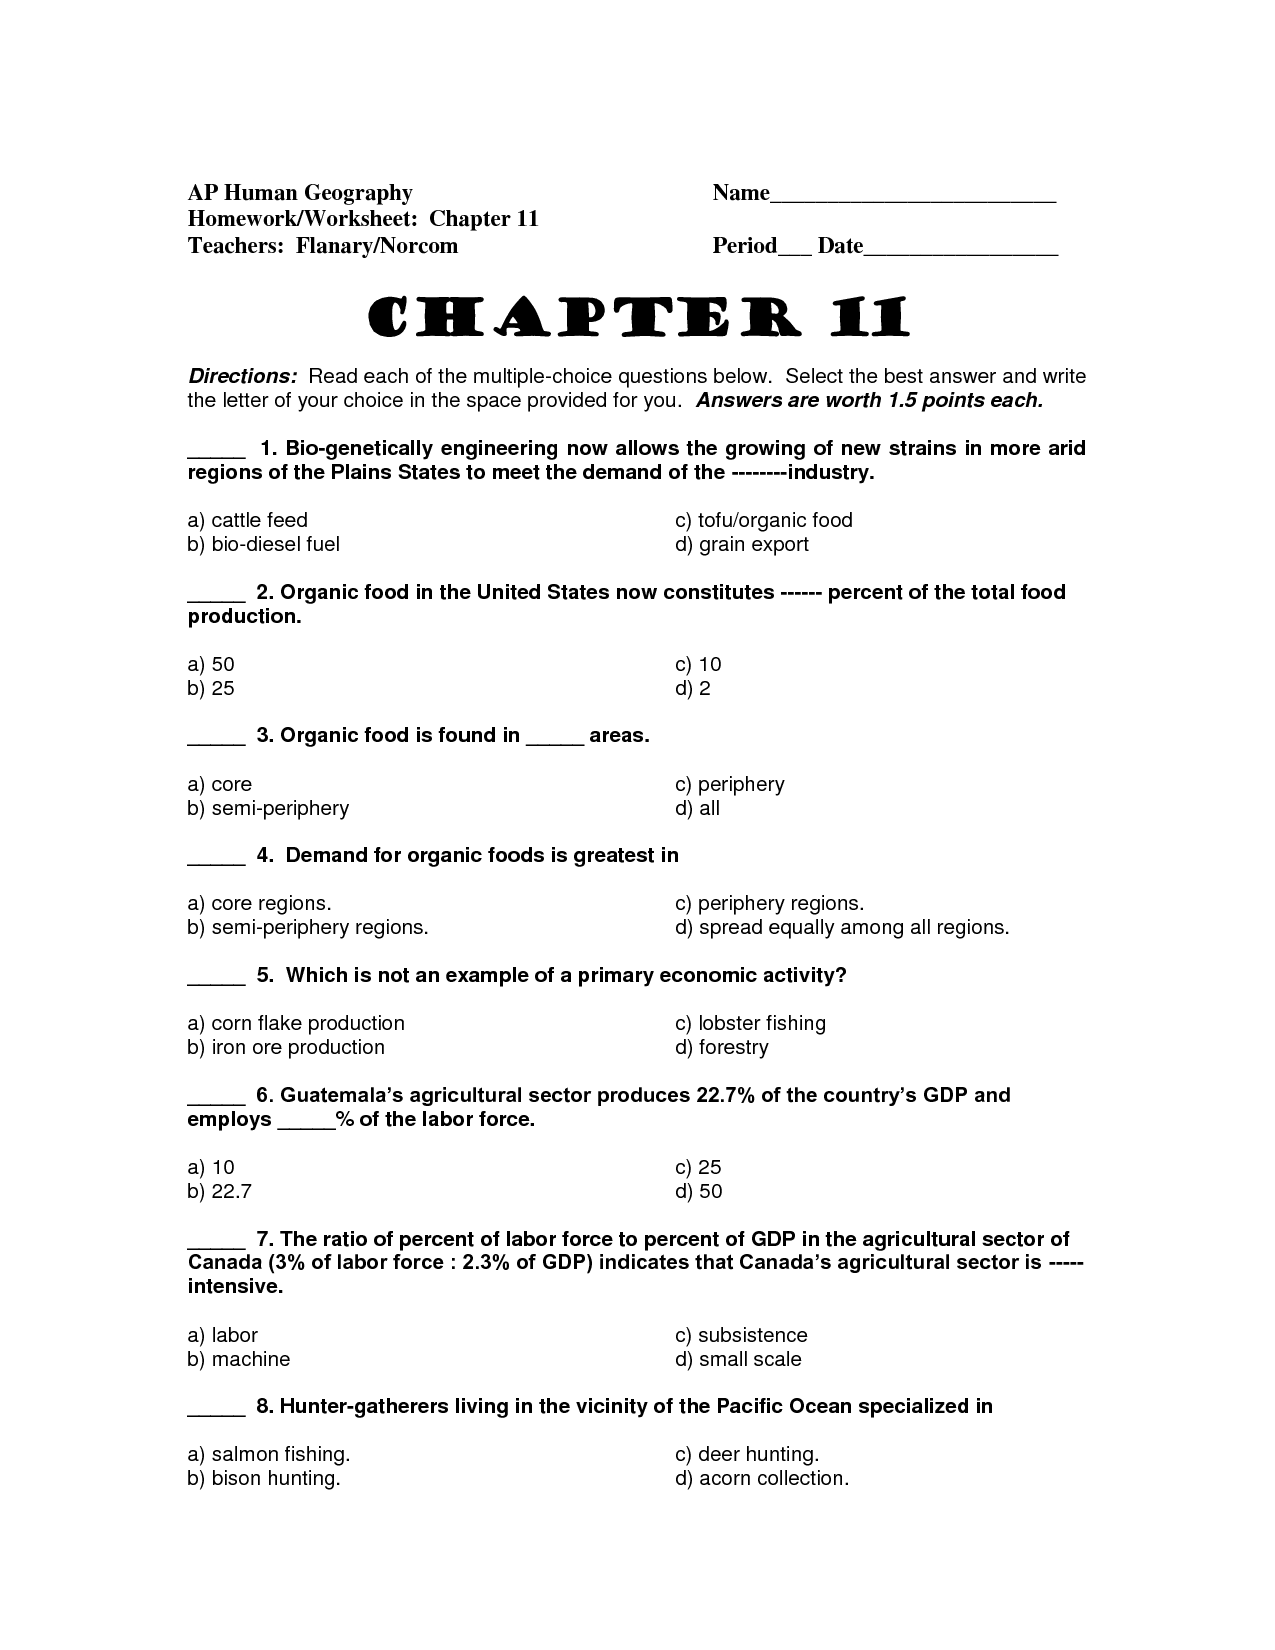 20 Best Images Of Ap Human Geography Chapter 7 Worksheet Answers